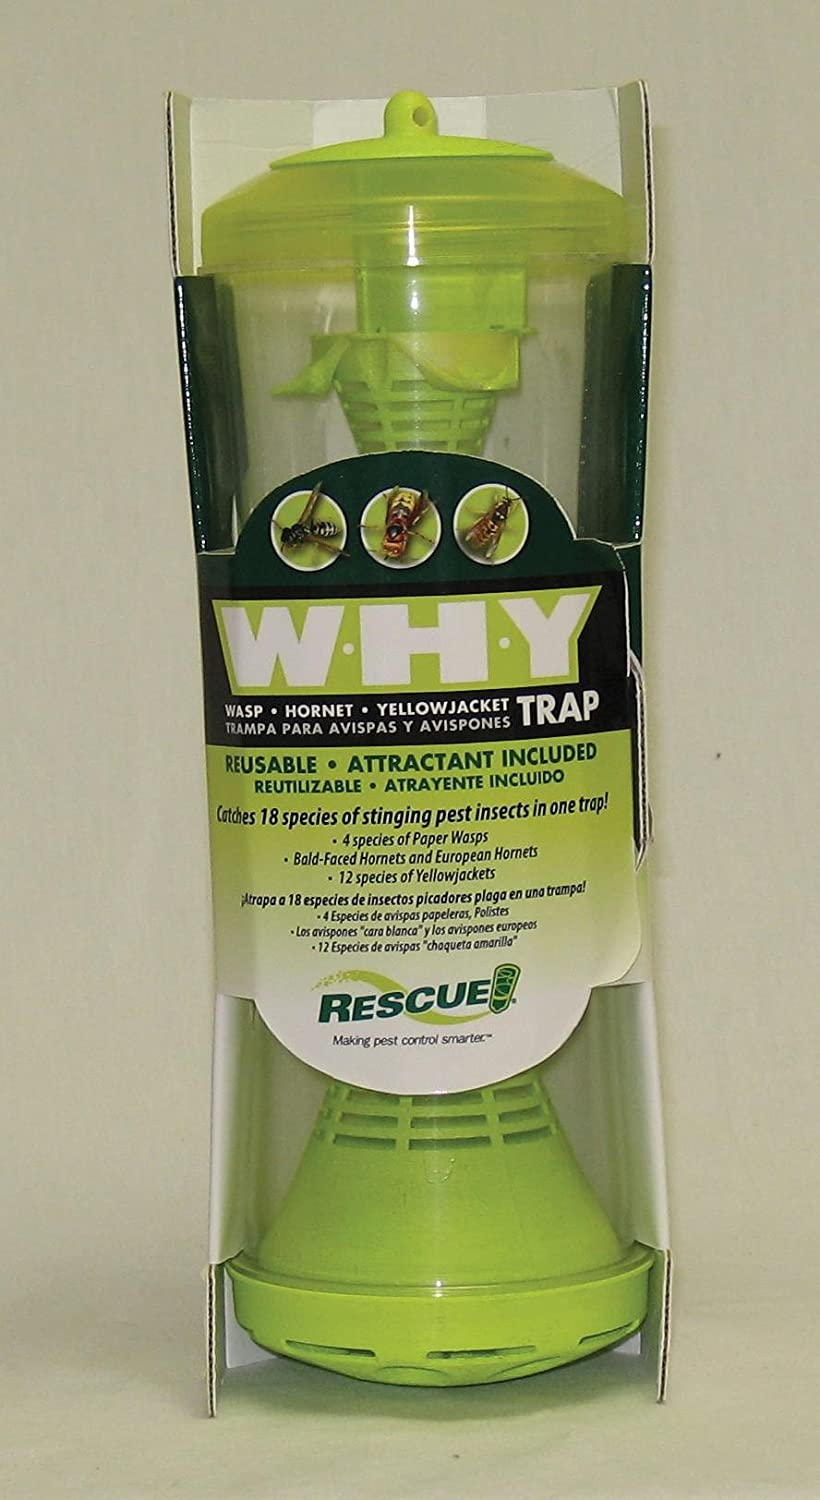 Amazon.com: STERLING INTRNTL RESCUE W-H-Y Wasp Hornet & Yellowjacket Reusable Trap: STERLING INTRNTL RESCUE: Beauty